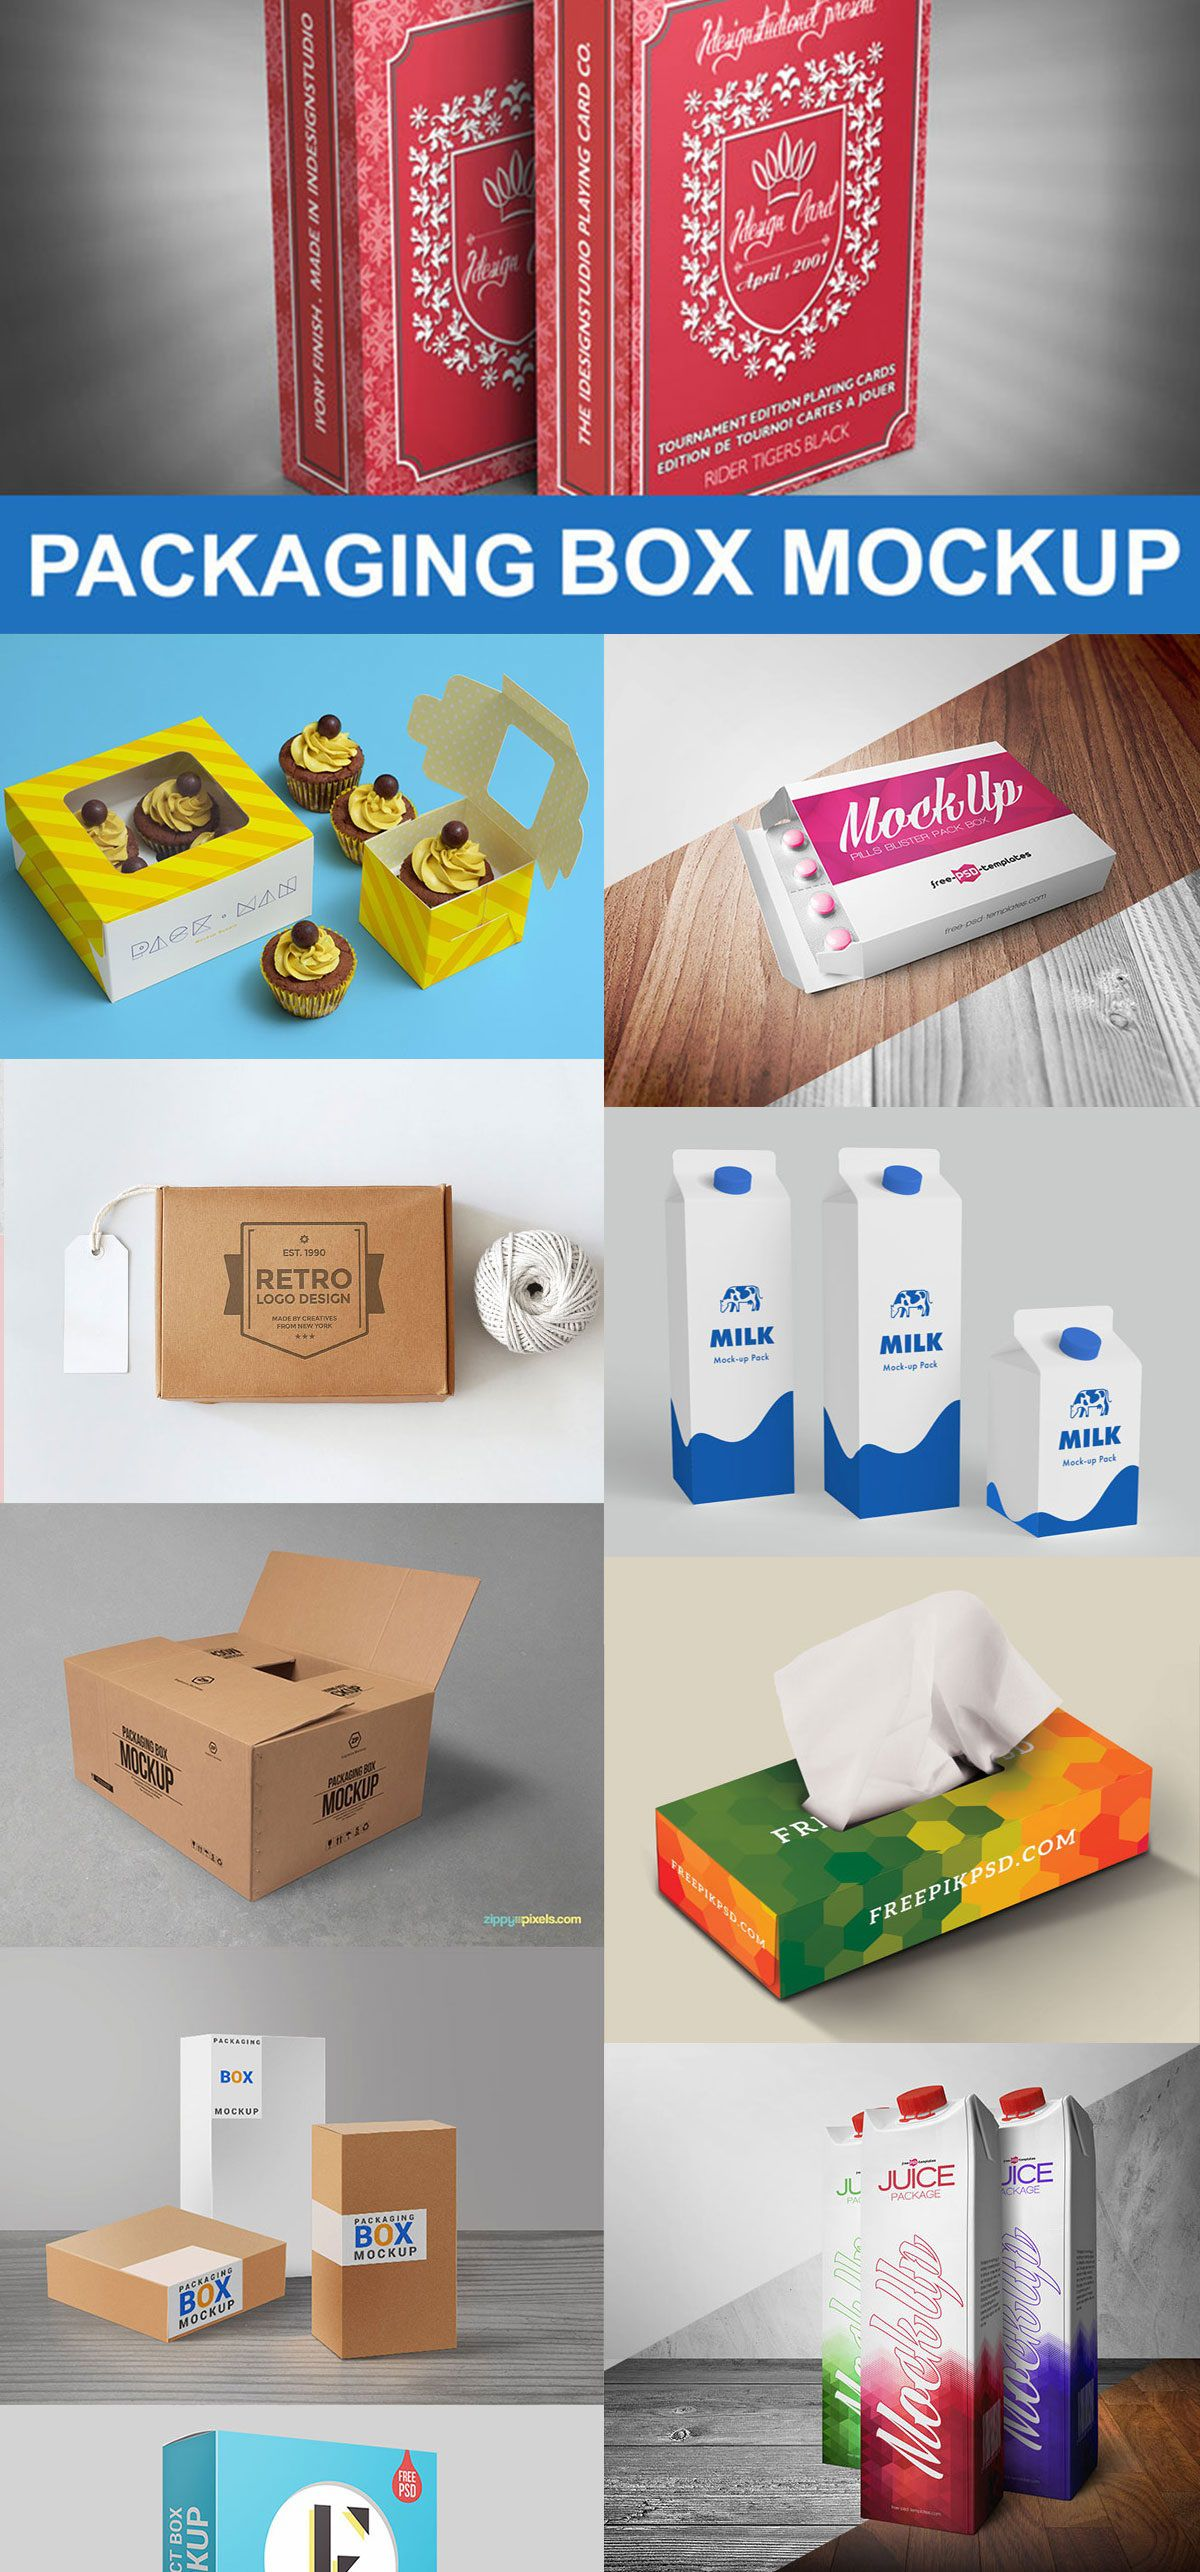 002 Archaicawful Box Design Template Free Highest Clarity  Text Download PackagingFull